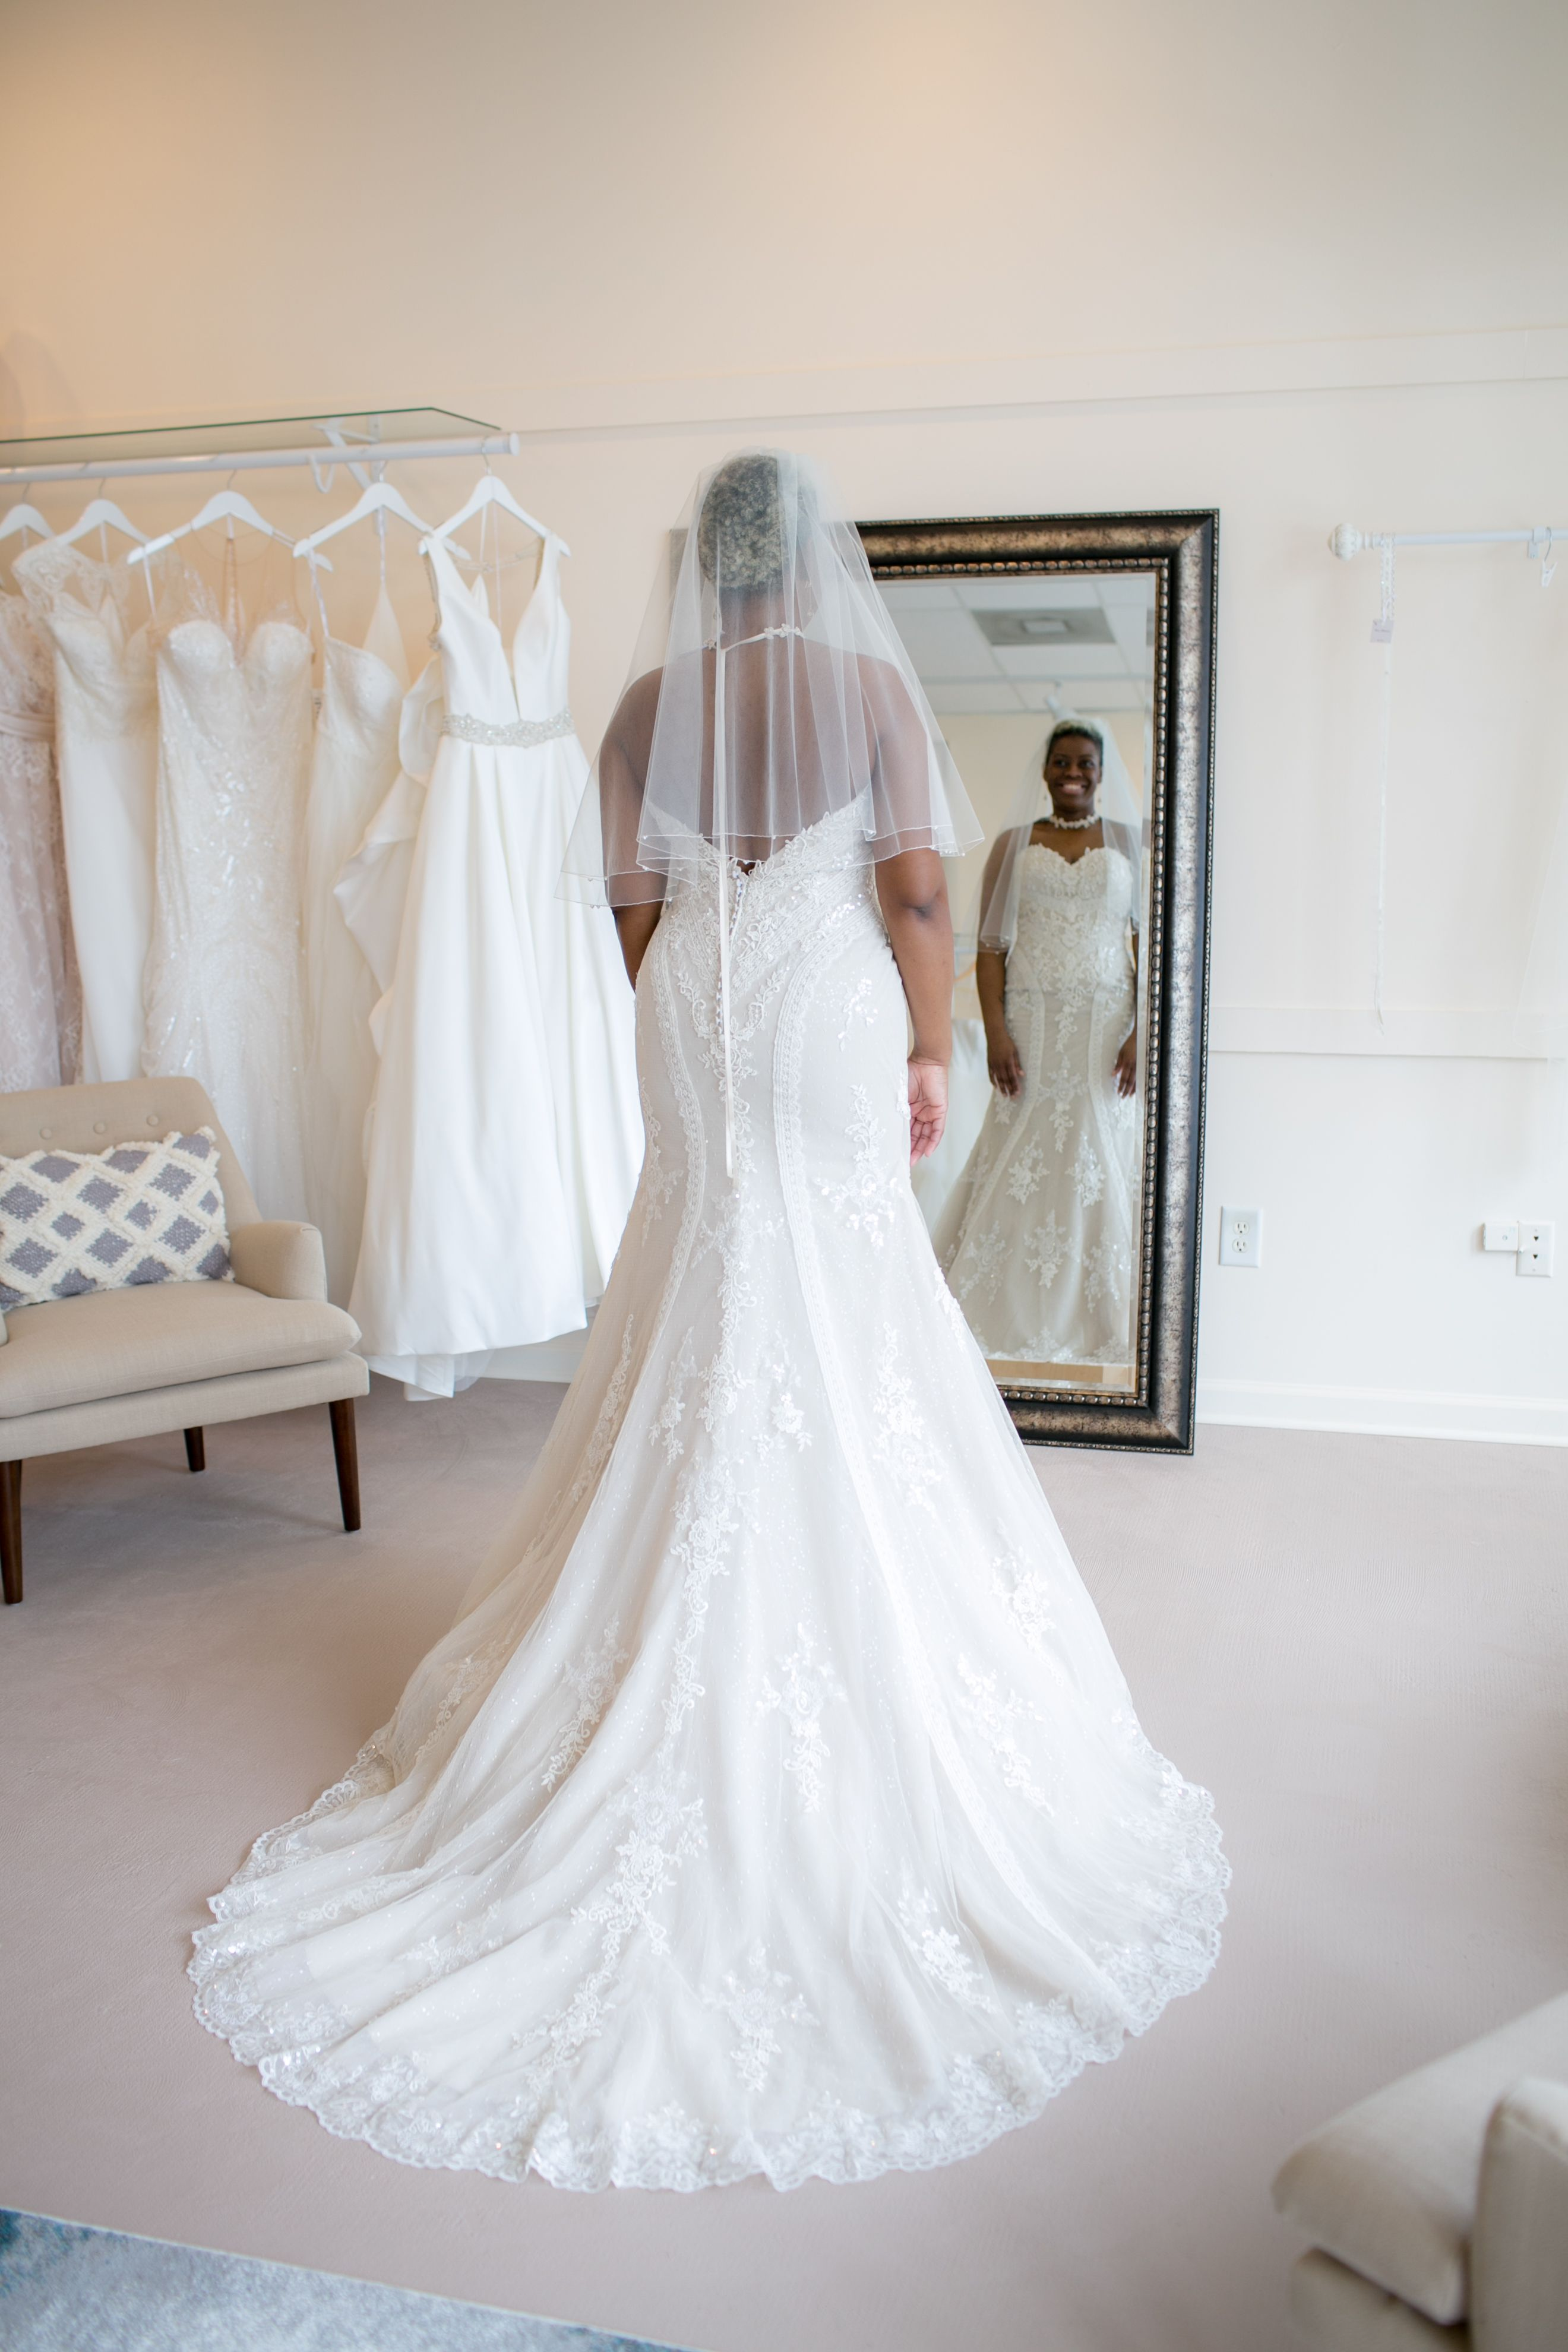 At The End Of The Day It S The Bride Who Makes The Dress Not The Other Way Around Kang Chun Lin Designer Happy Dresses Wedding Dresses National Dress,Beach Flowy Sleeveless Beach Flowy Wedding Dresses